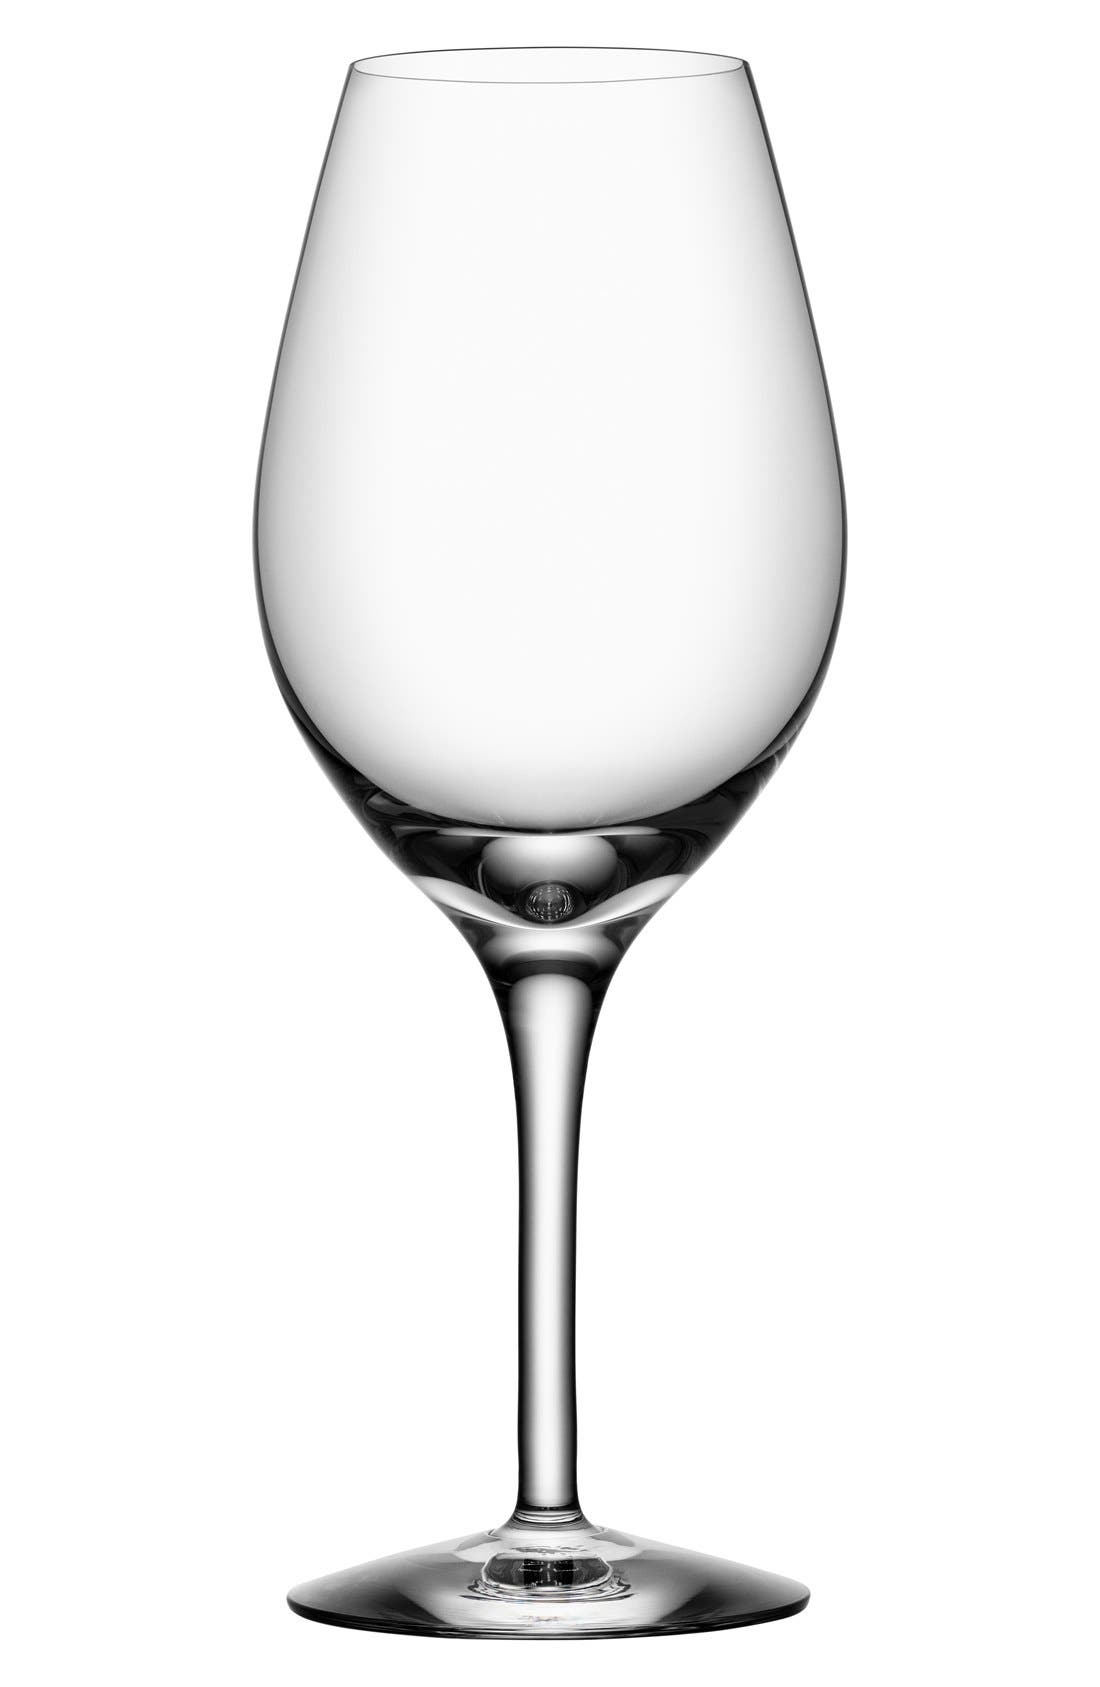 Main Image - Orrefors 'More' Wine Glasses (Set of 4)